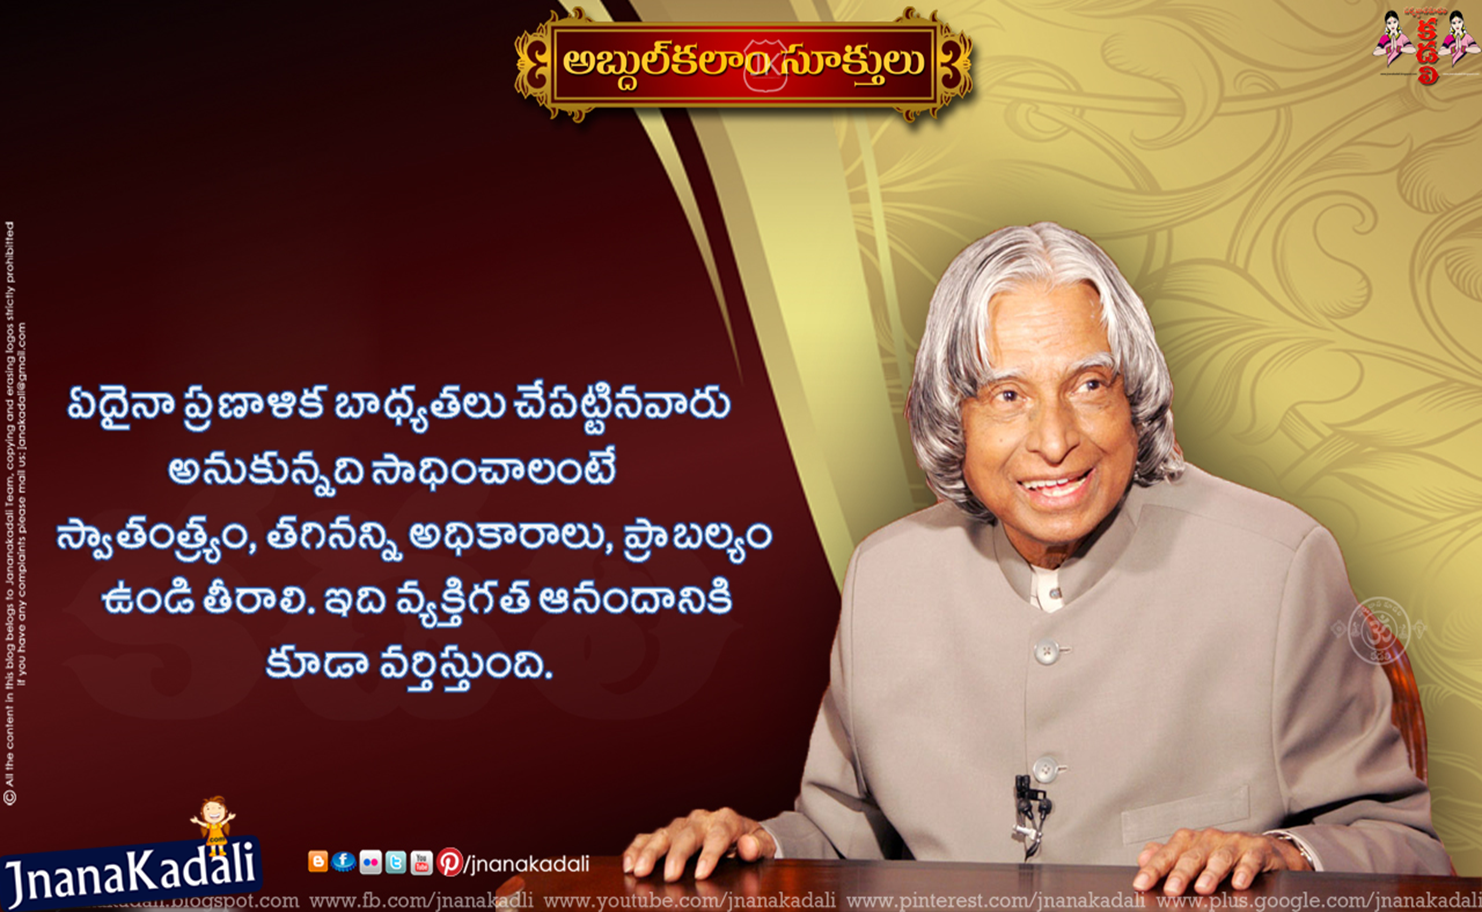 short essay of abdul kalam Dr avul pakir jainulabdeen abdul kalam was born in a very poor fishermanâs family on 15 october, 1931 in rameshwaram though he was a legatee of adversity and poverty yet he was not born to shatter his father jainul abden was a hawker and used to sell newspapers.